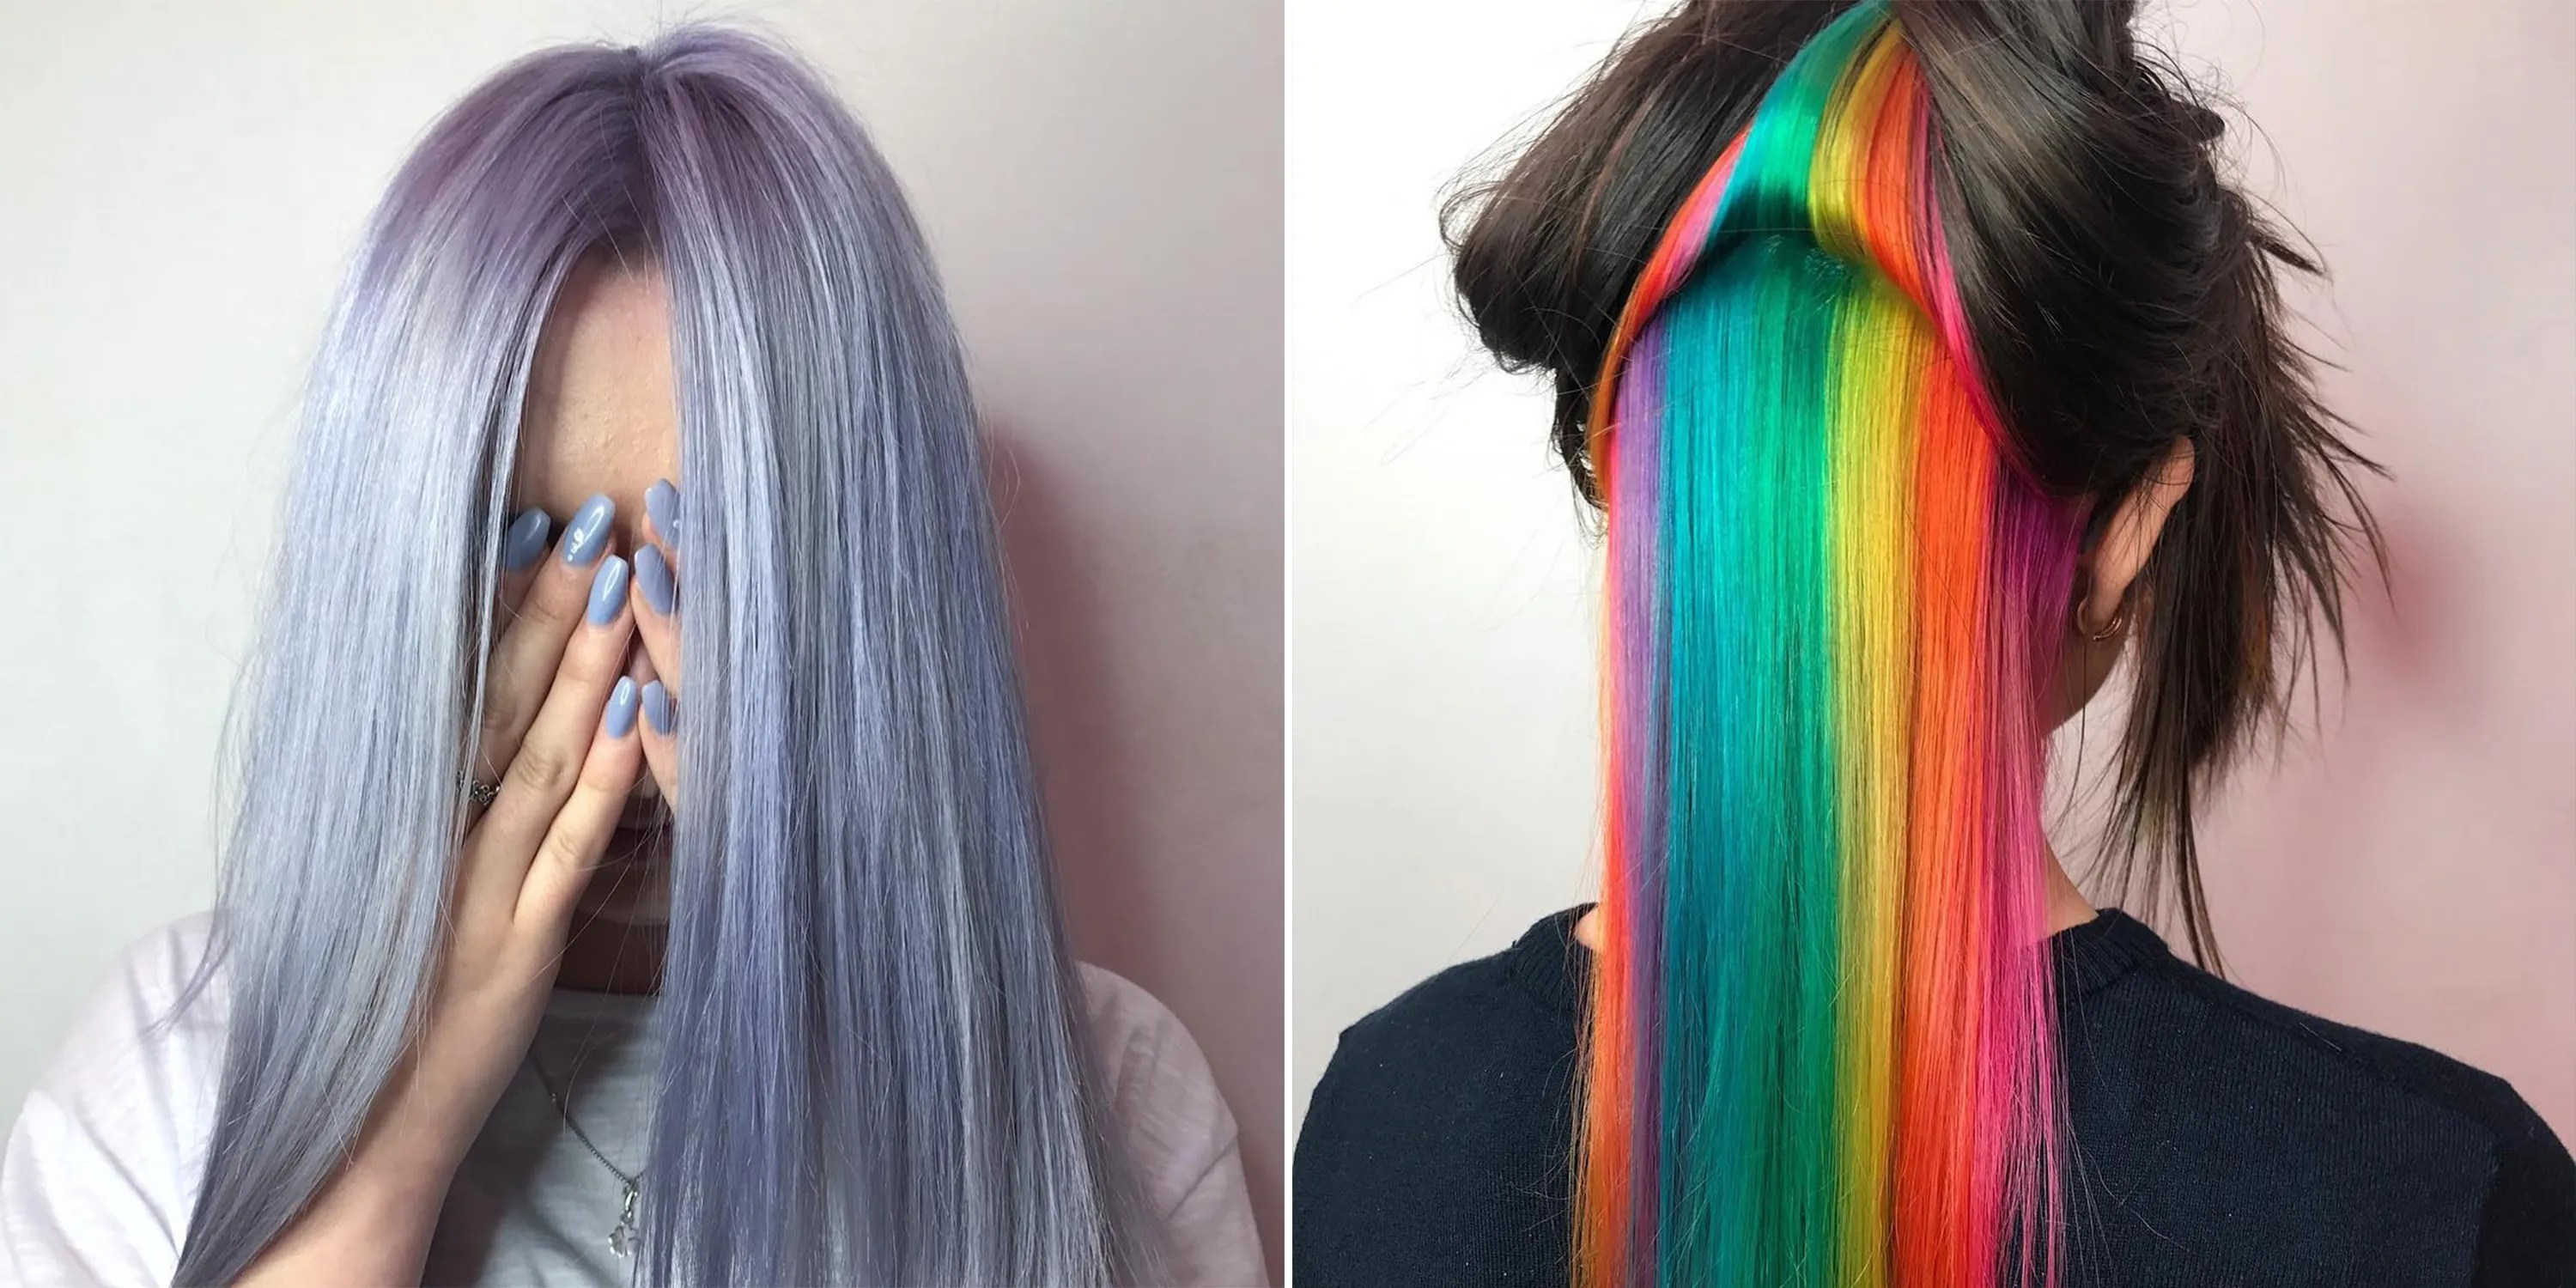 4 Rainbow Hair Color Trends You Need To Know For